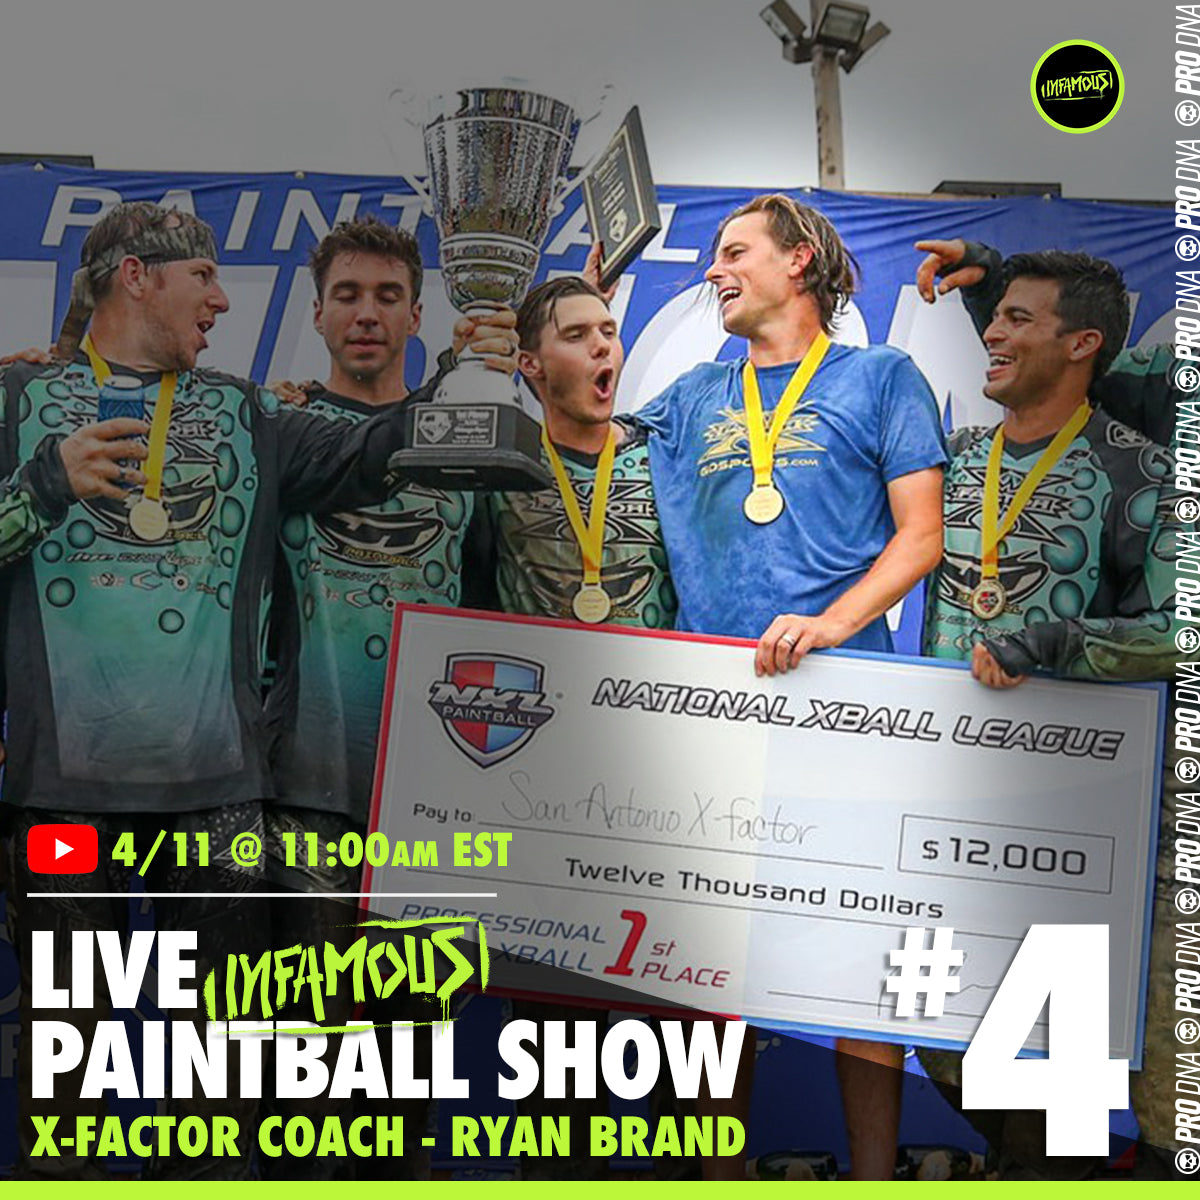 Infamous Live Paintball Show #4 - Ryan Brand